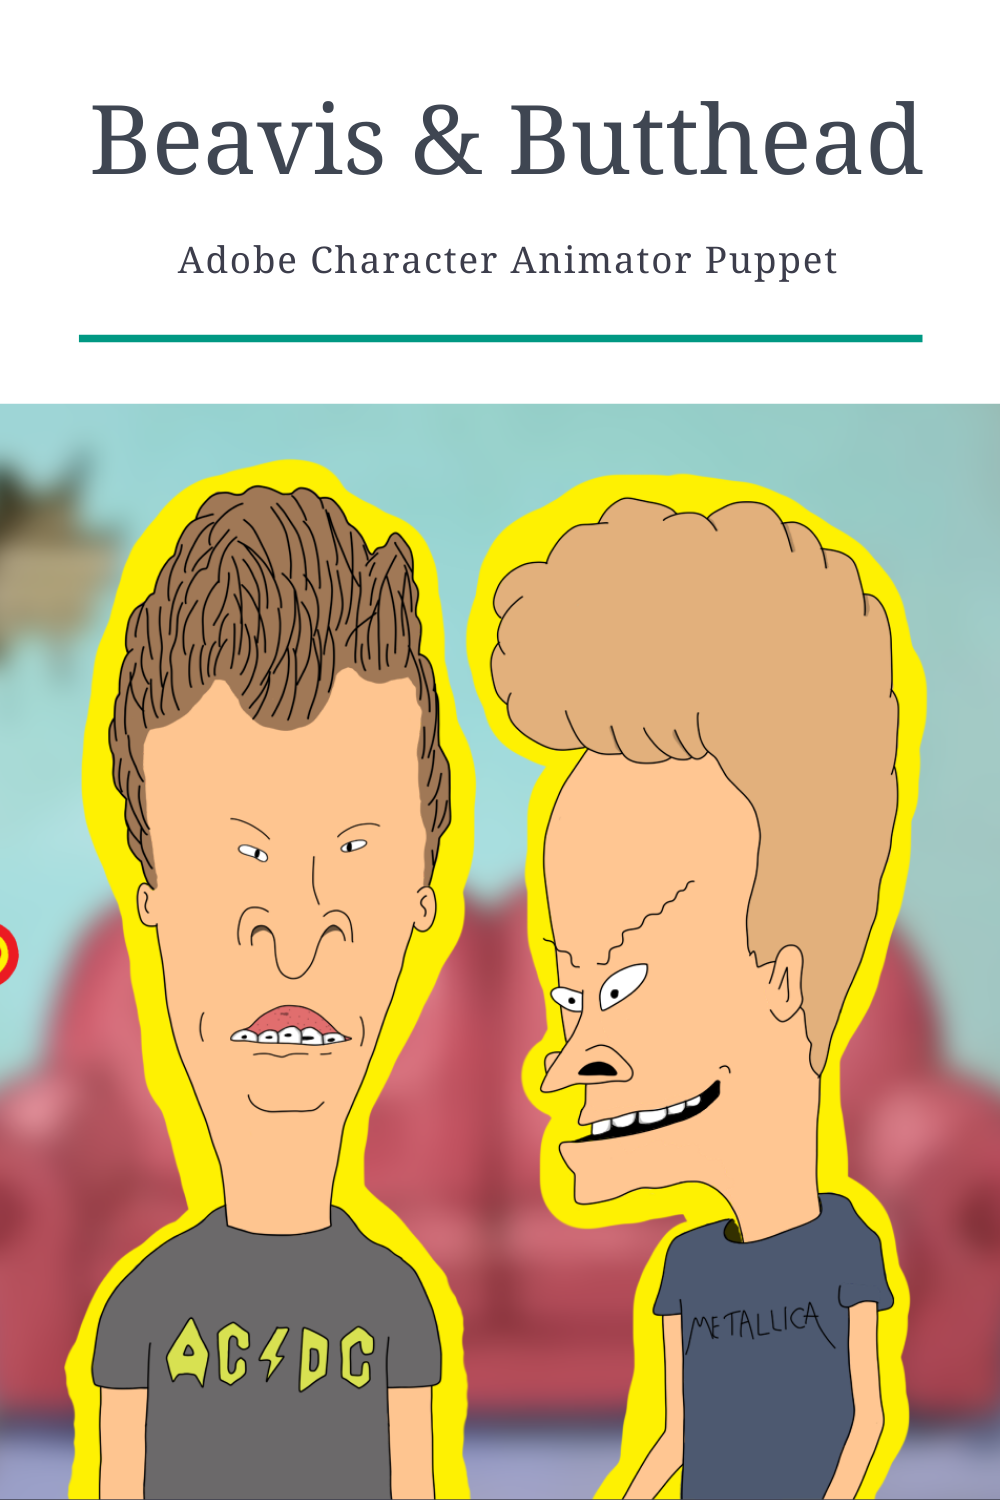 Beavis And Butthead Character Animator Puppet Free Puppet Old School Cartoons Character Animator Cc Puppets